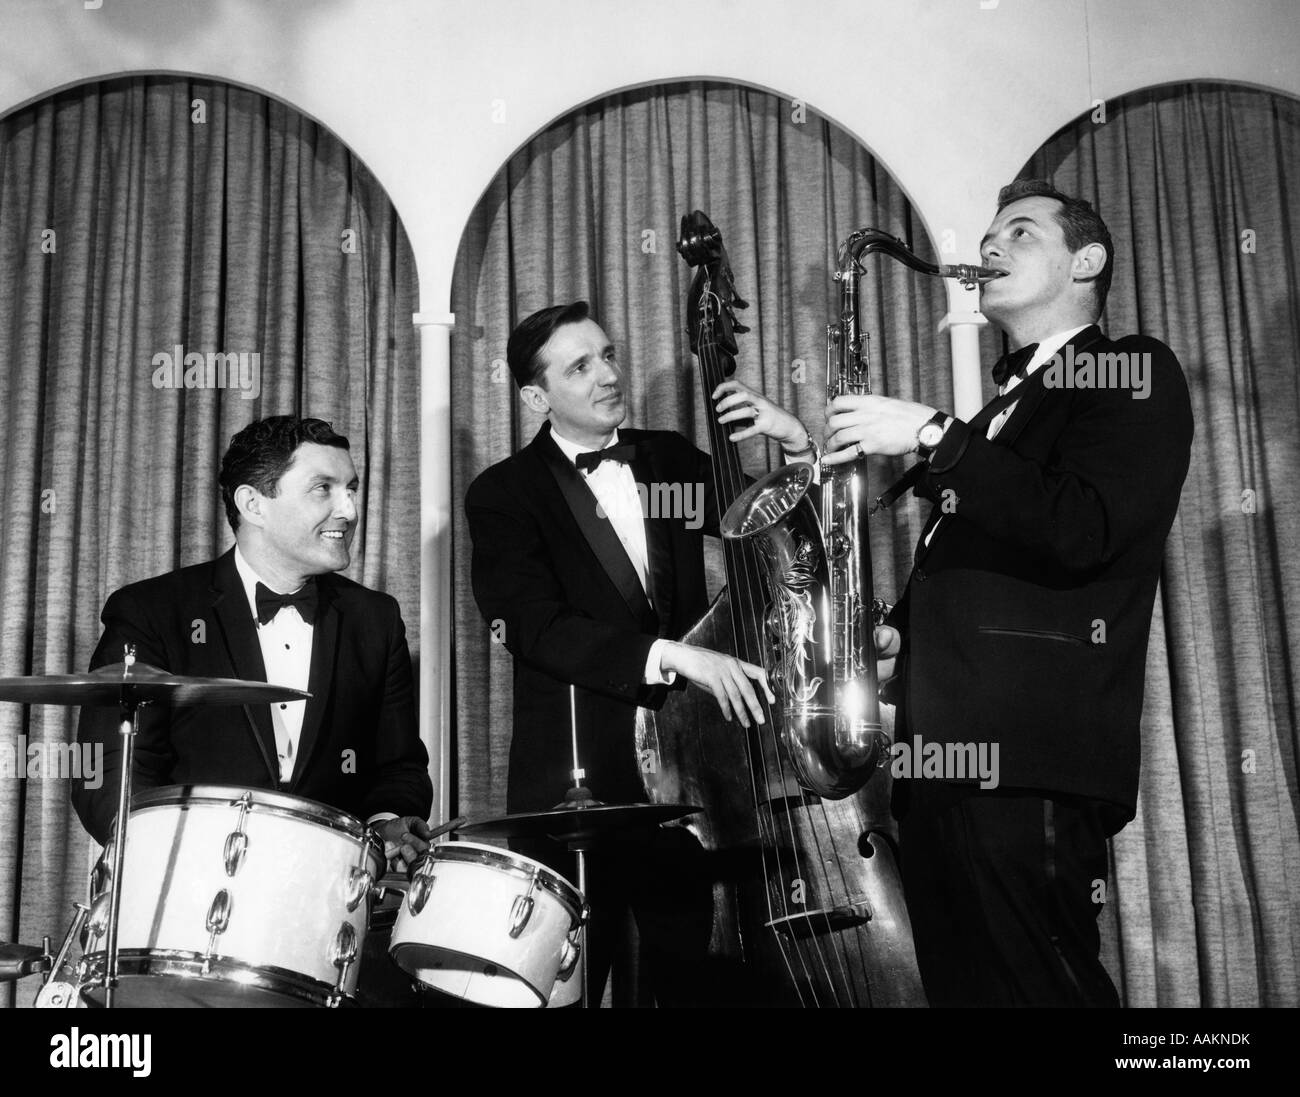 1950s THREE MEN IN TUXEDOS MUSICAL TRIO WITH DRUMS UPRIGHT BASE AND SAXOPHONE - Stock Image